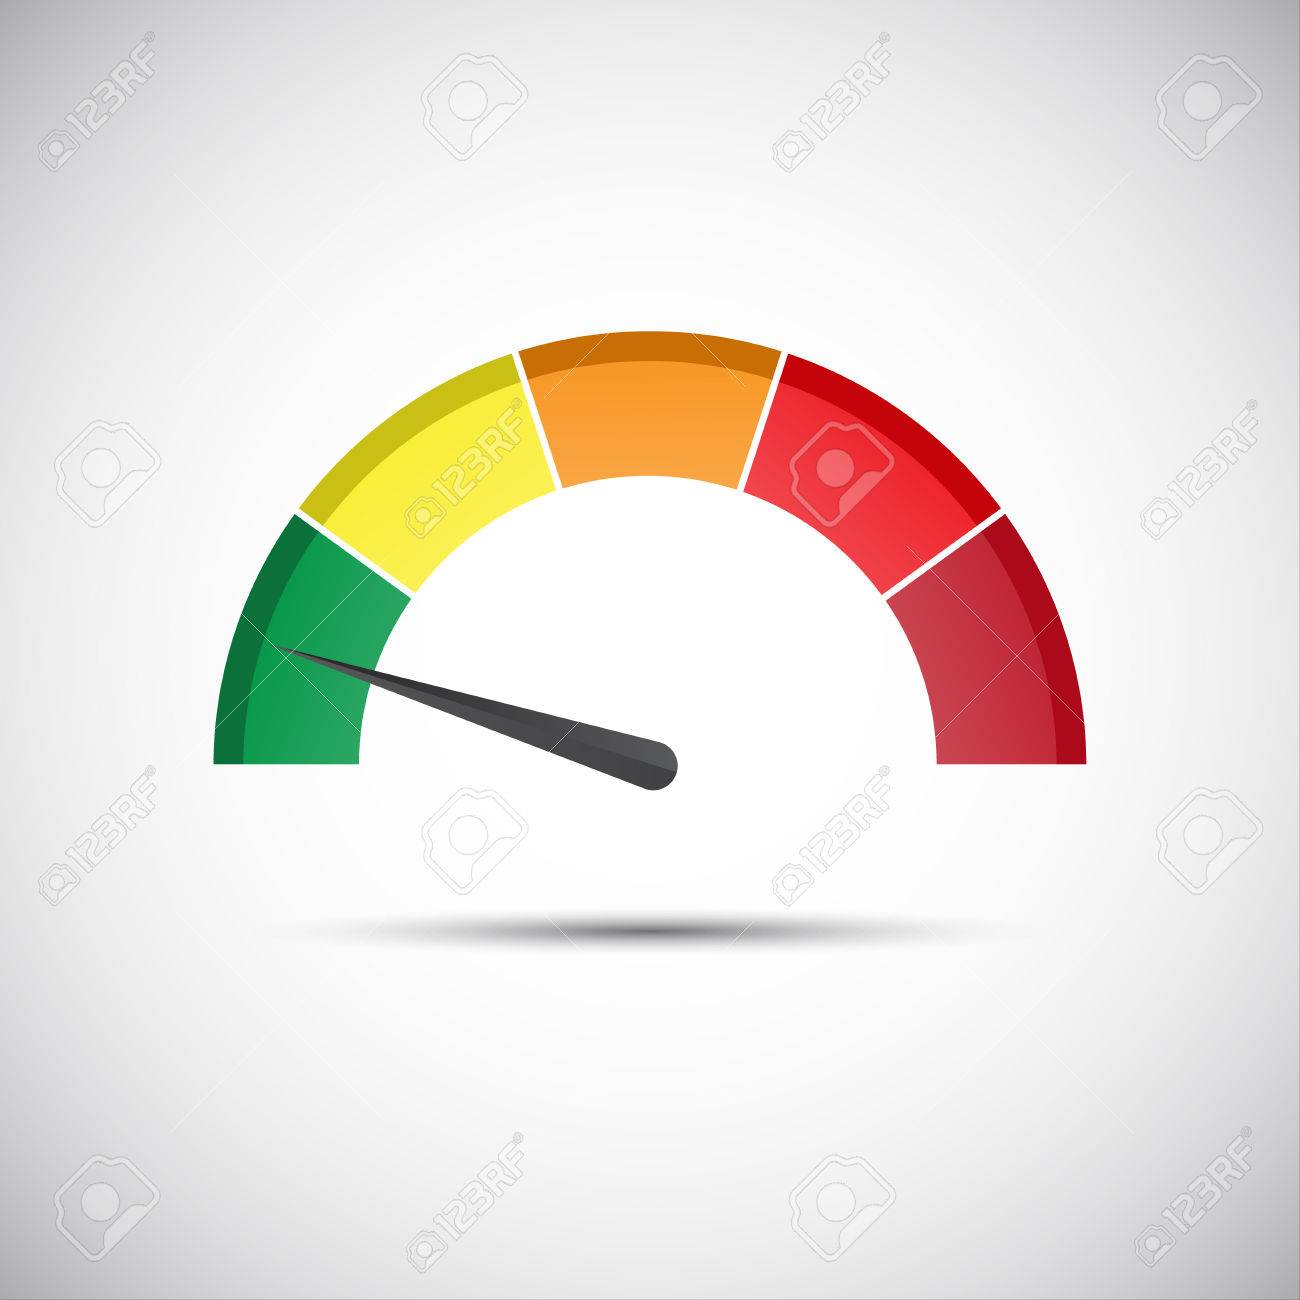 Color tachometer, flow meter with indicator in green part, speed meter and performance measurement icon, illustration for your website, infographic and apps - 57486399